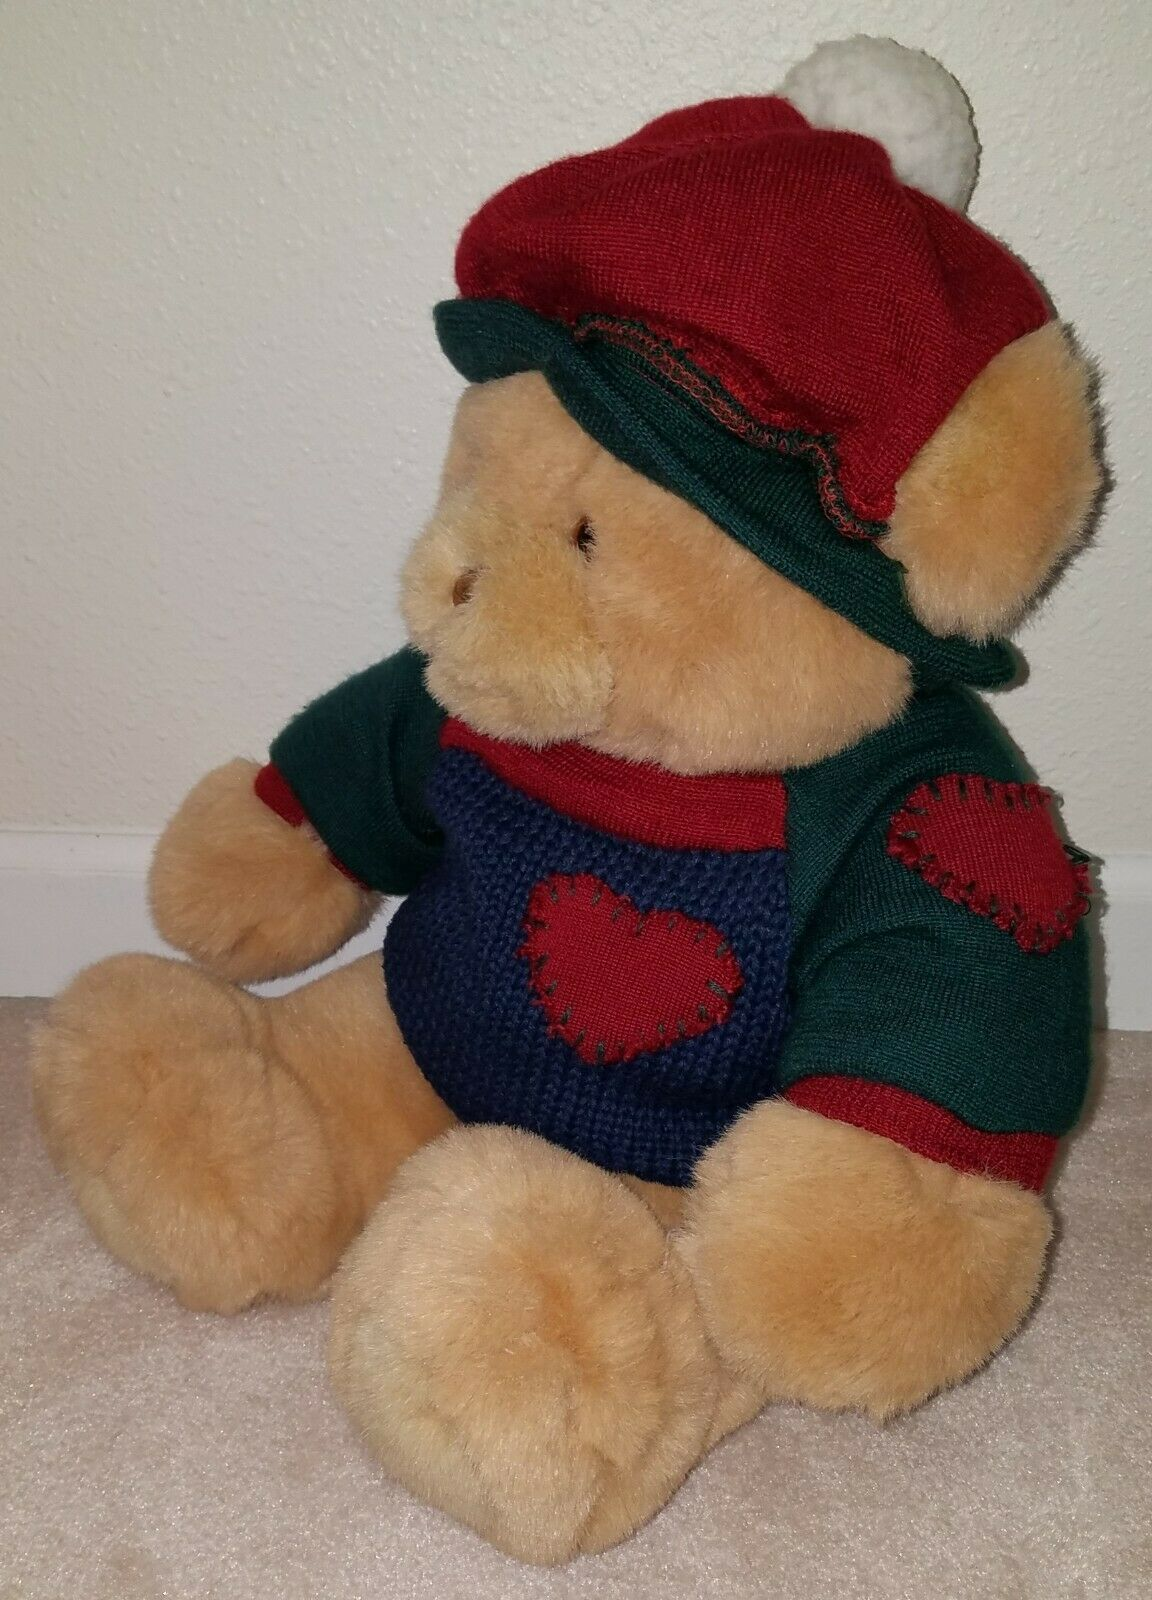 Commonwealth Brown Teddy Bear Plush Stuffed Animal Sweater Hat Blue Green Red